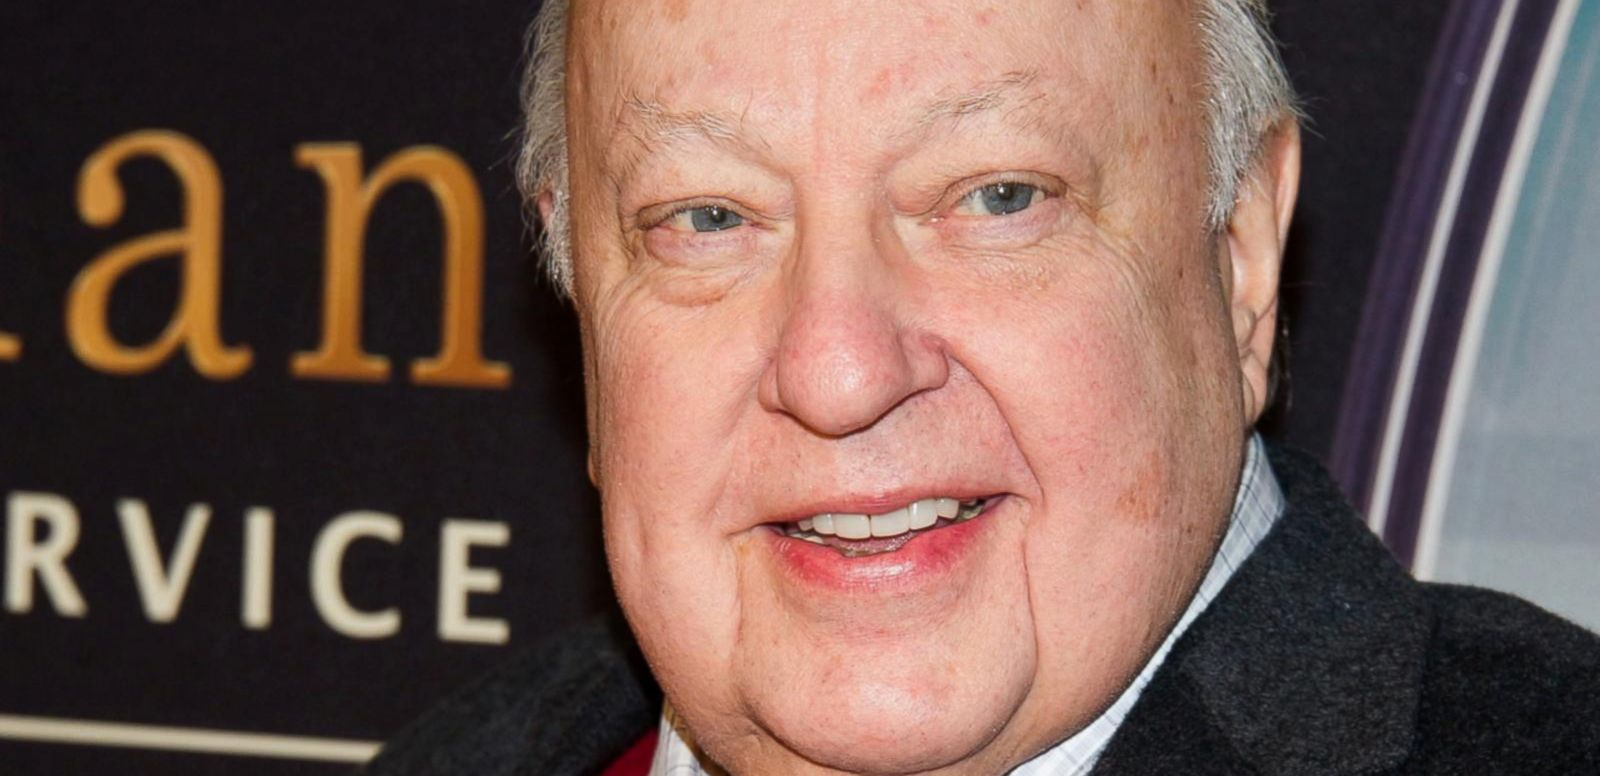 VIDEO: Roger Ailes Resigns From Fox News Amid Sexual Harassment Allegations